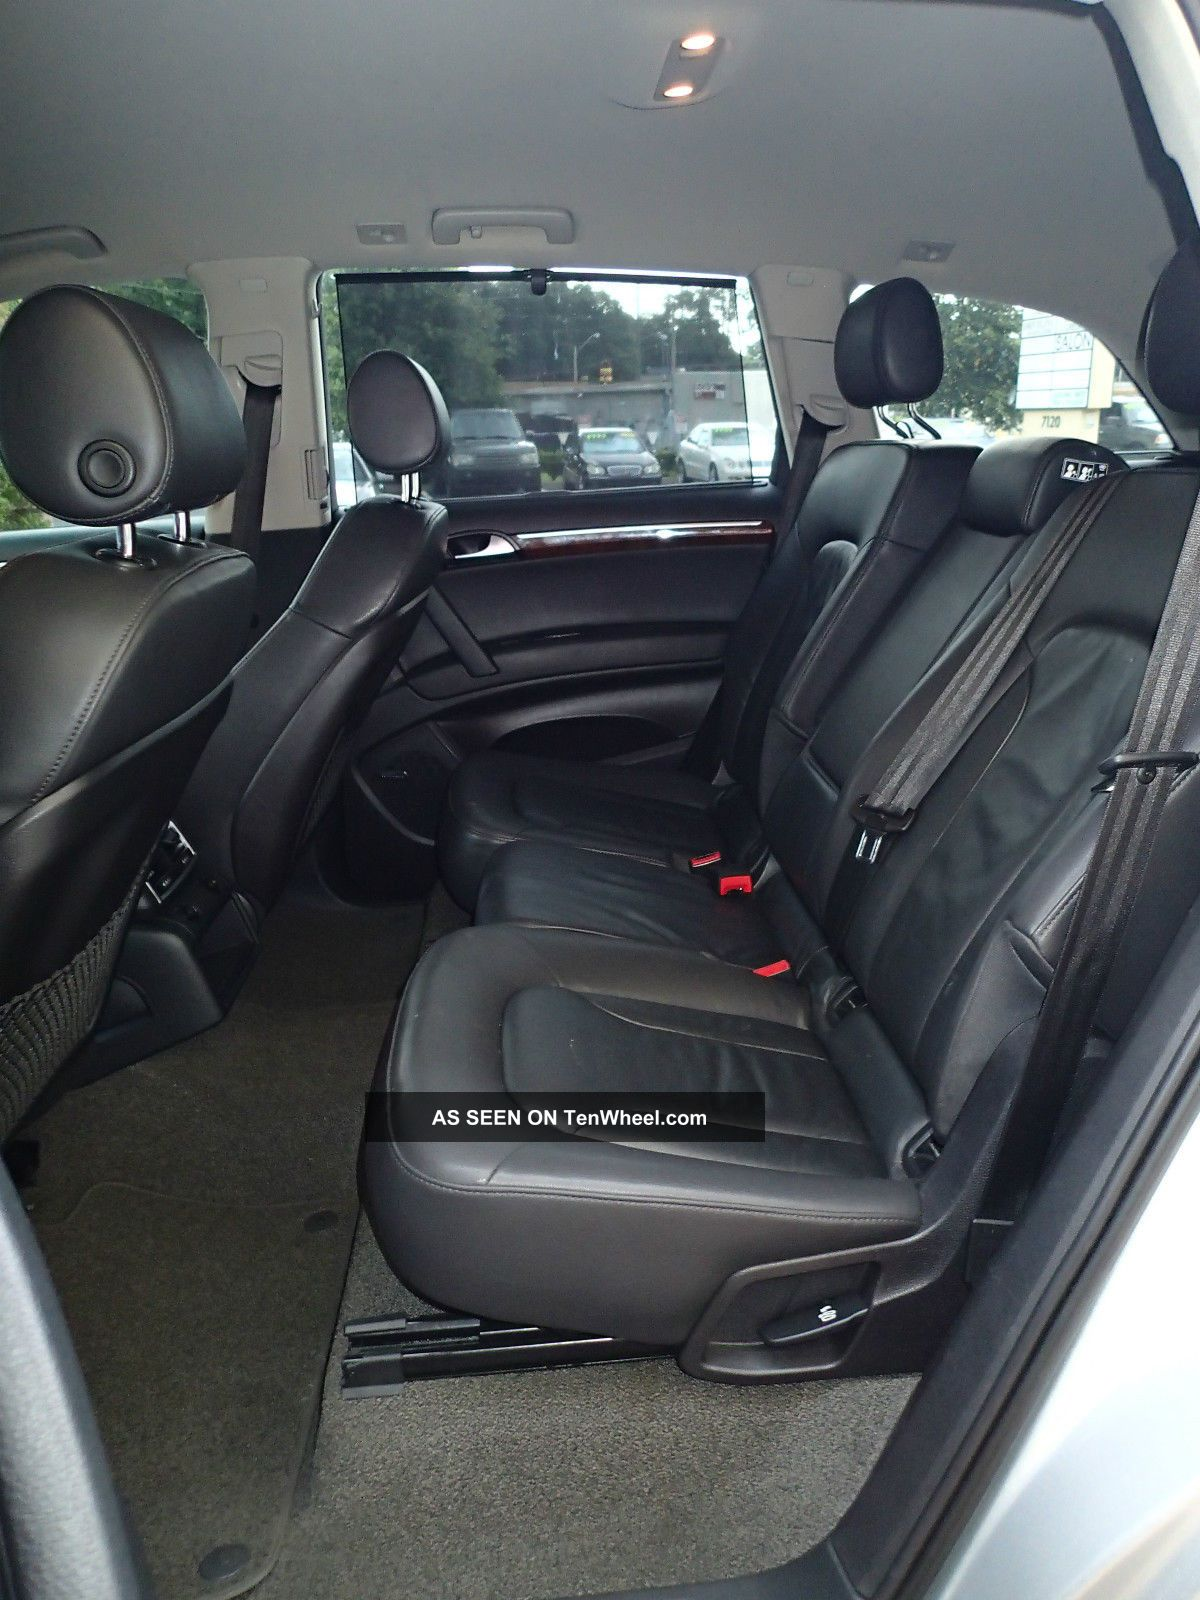 Audi Q Rd Row Seating Awd Florida Car Lgw besides  in addition  in addition  also Row. on 3 row cars with v8